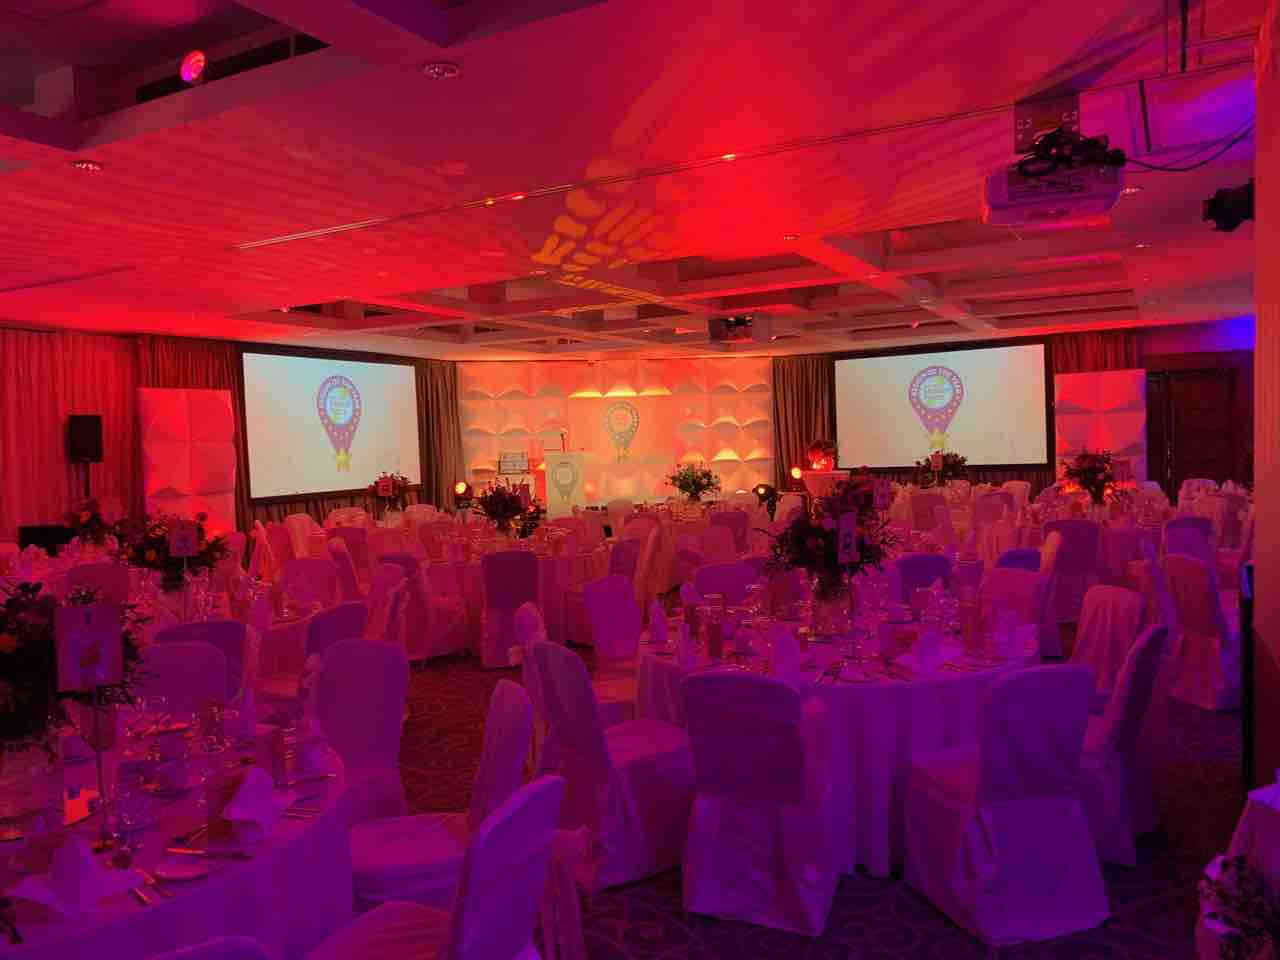 Two projectors & projector screen for hire